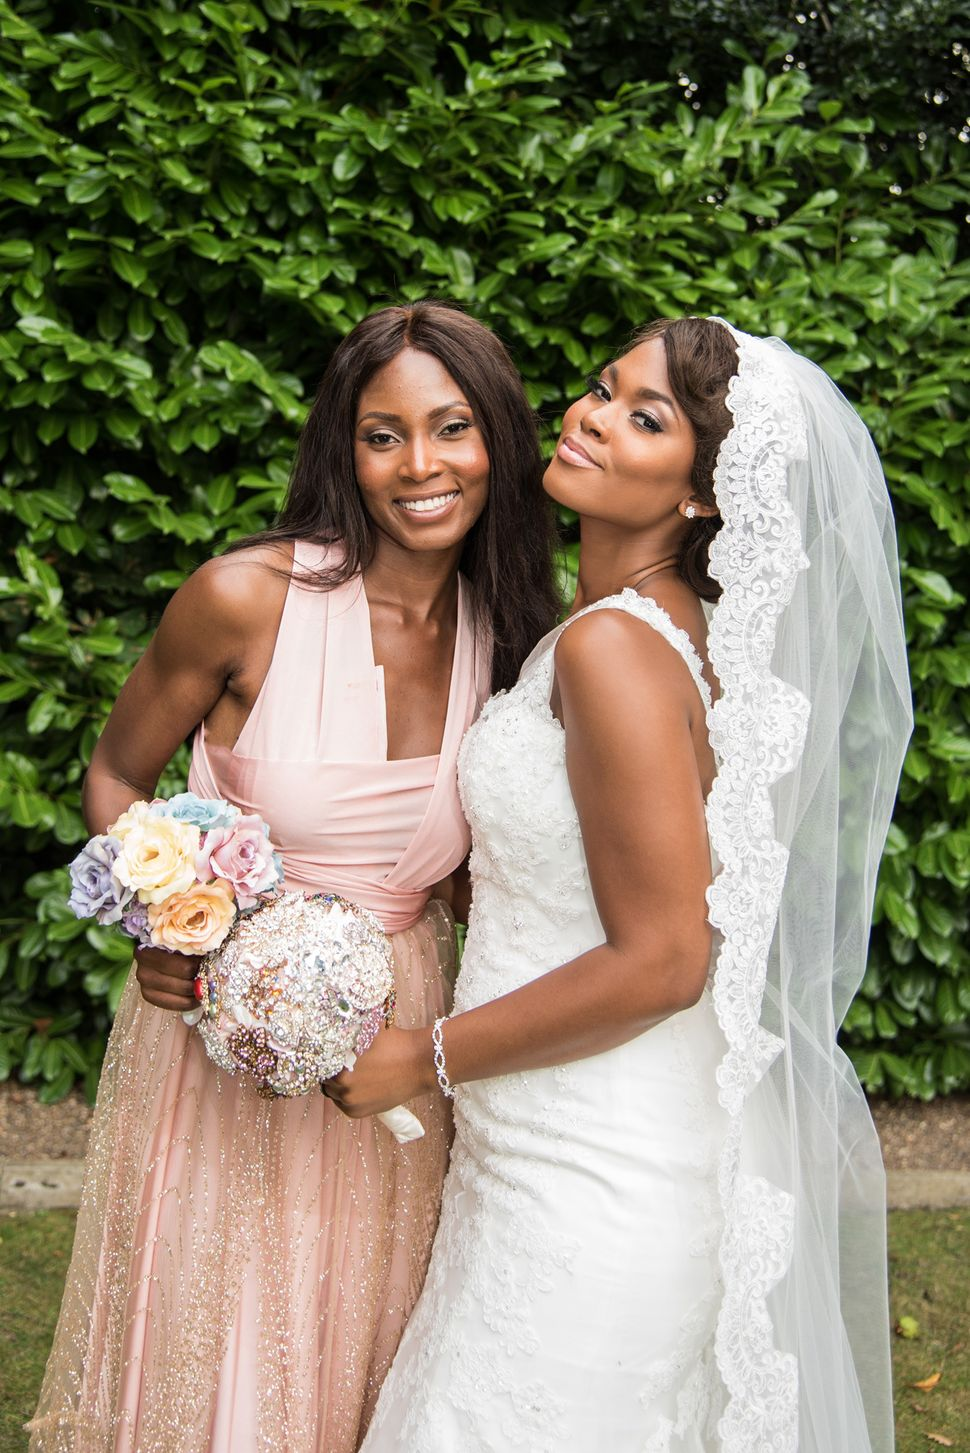 Rose Adaje with her sister Susanna Mensah at her wedding in Northwood, August 2016.